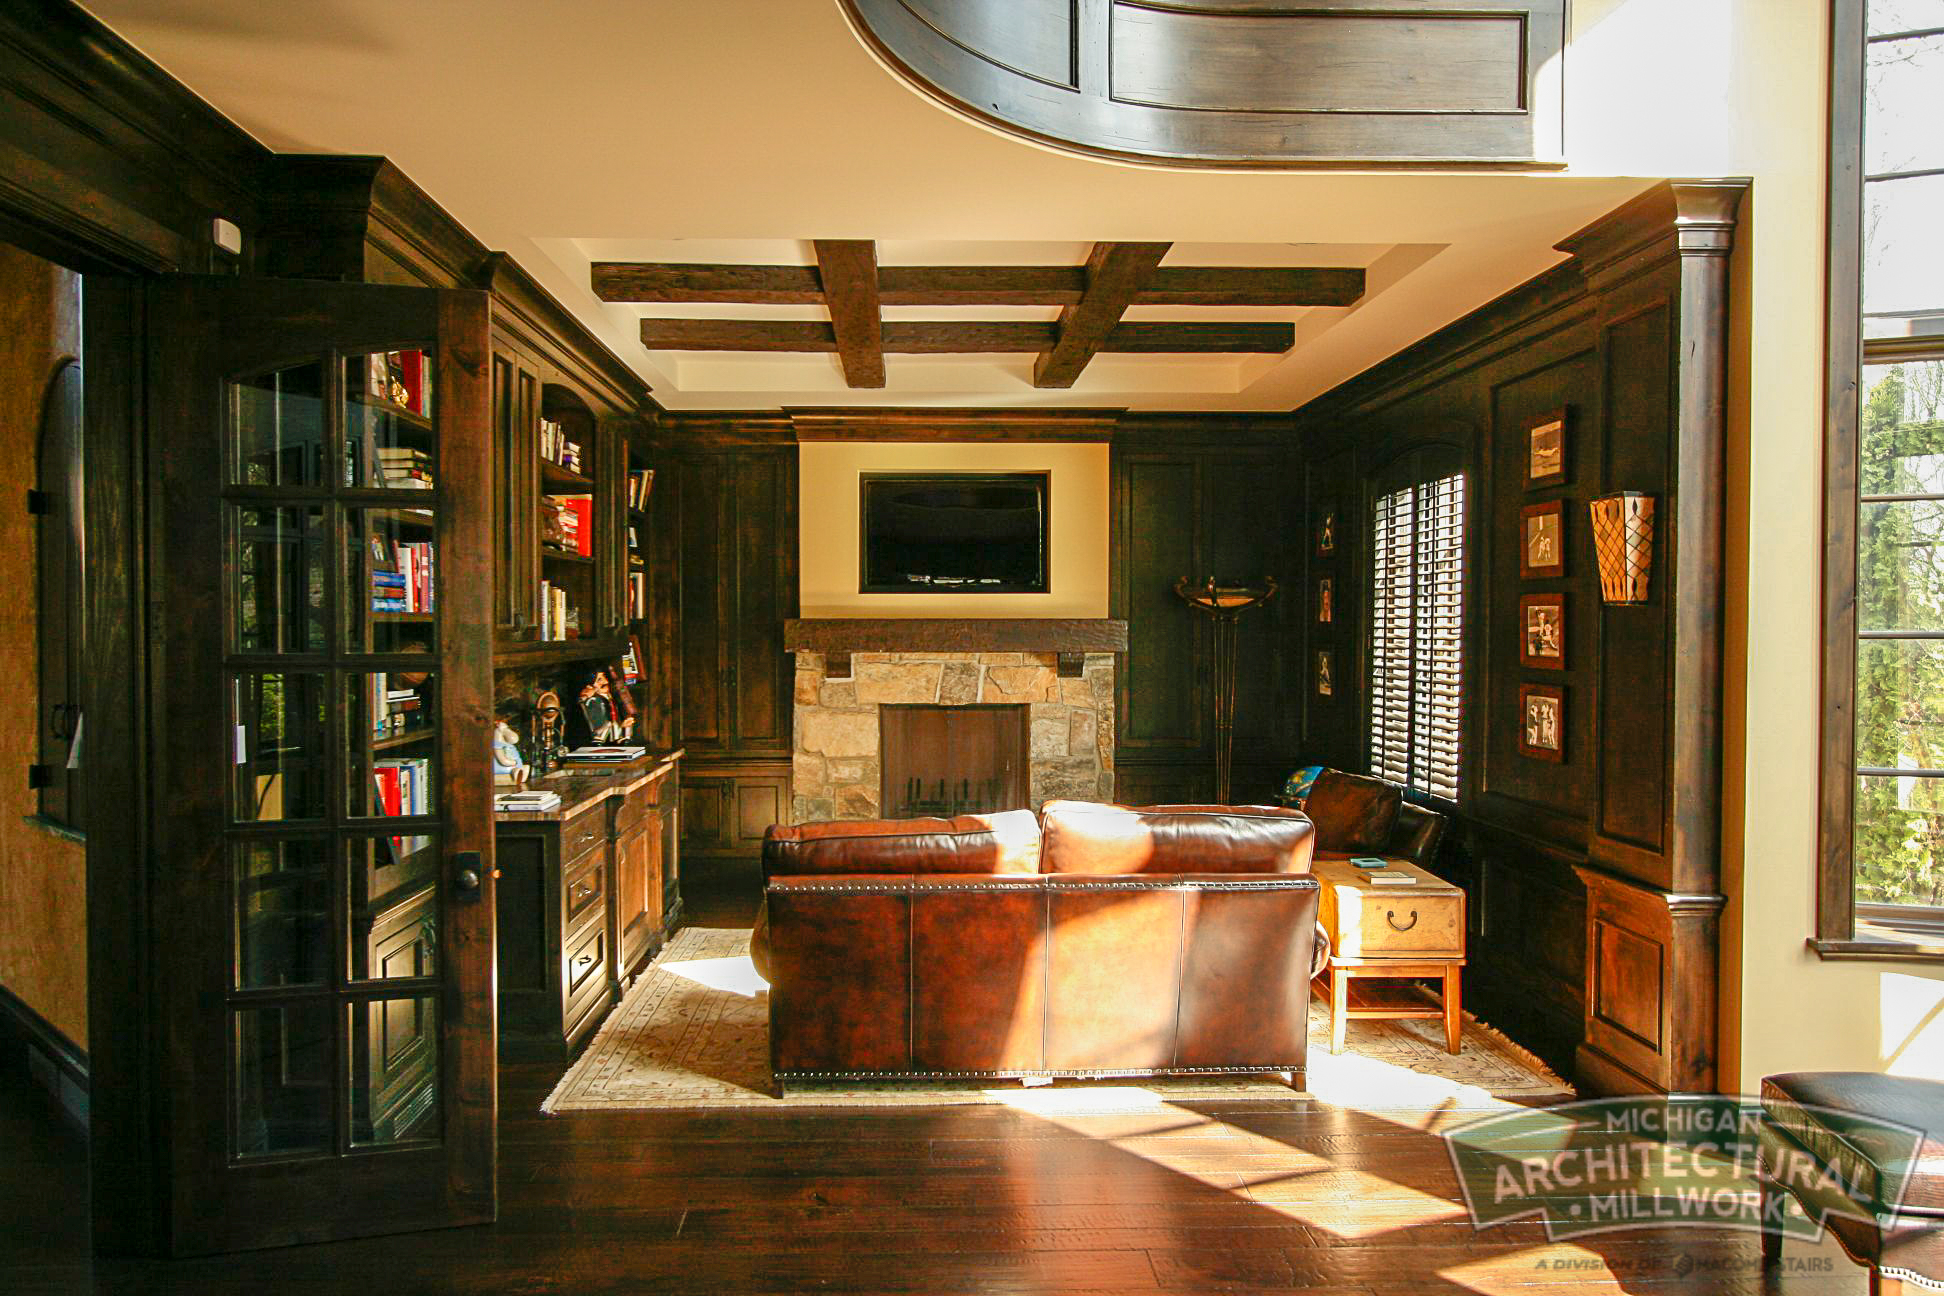 Michigan Architectural Millwork- Moulding and Millwork Photo-166.jpg